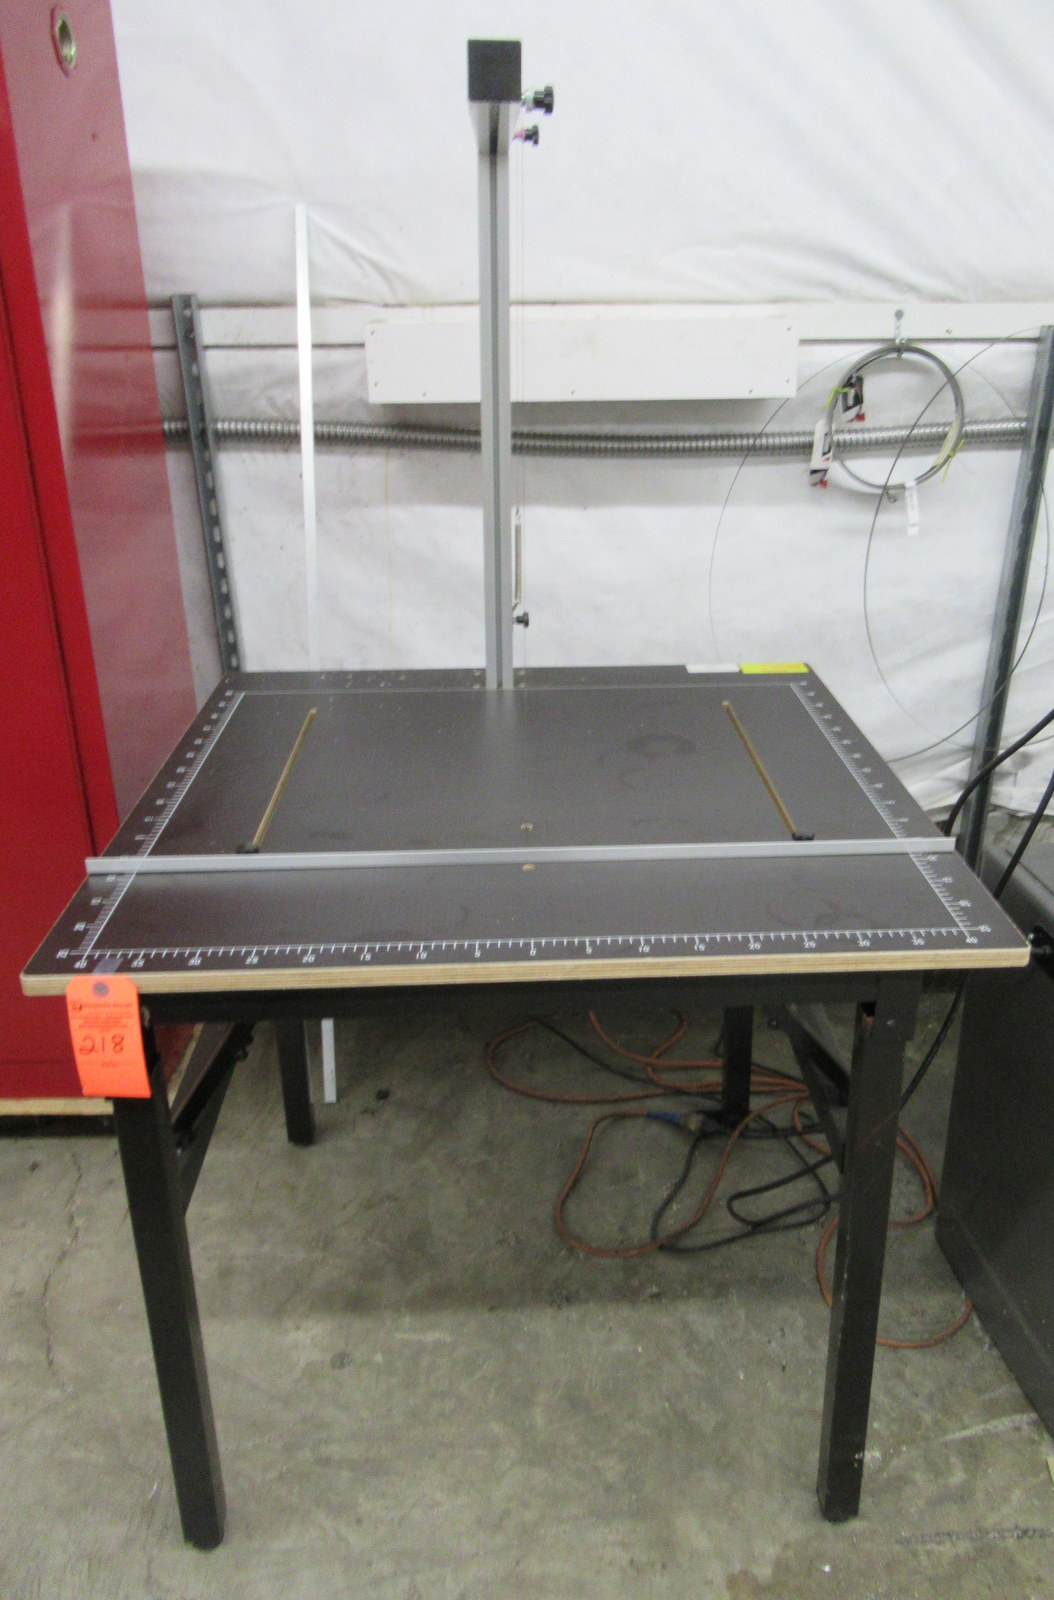 Lot 218 - Desktop Hot Wire Foam Cutting Machine Table 100V - 120V